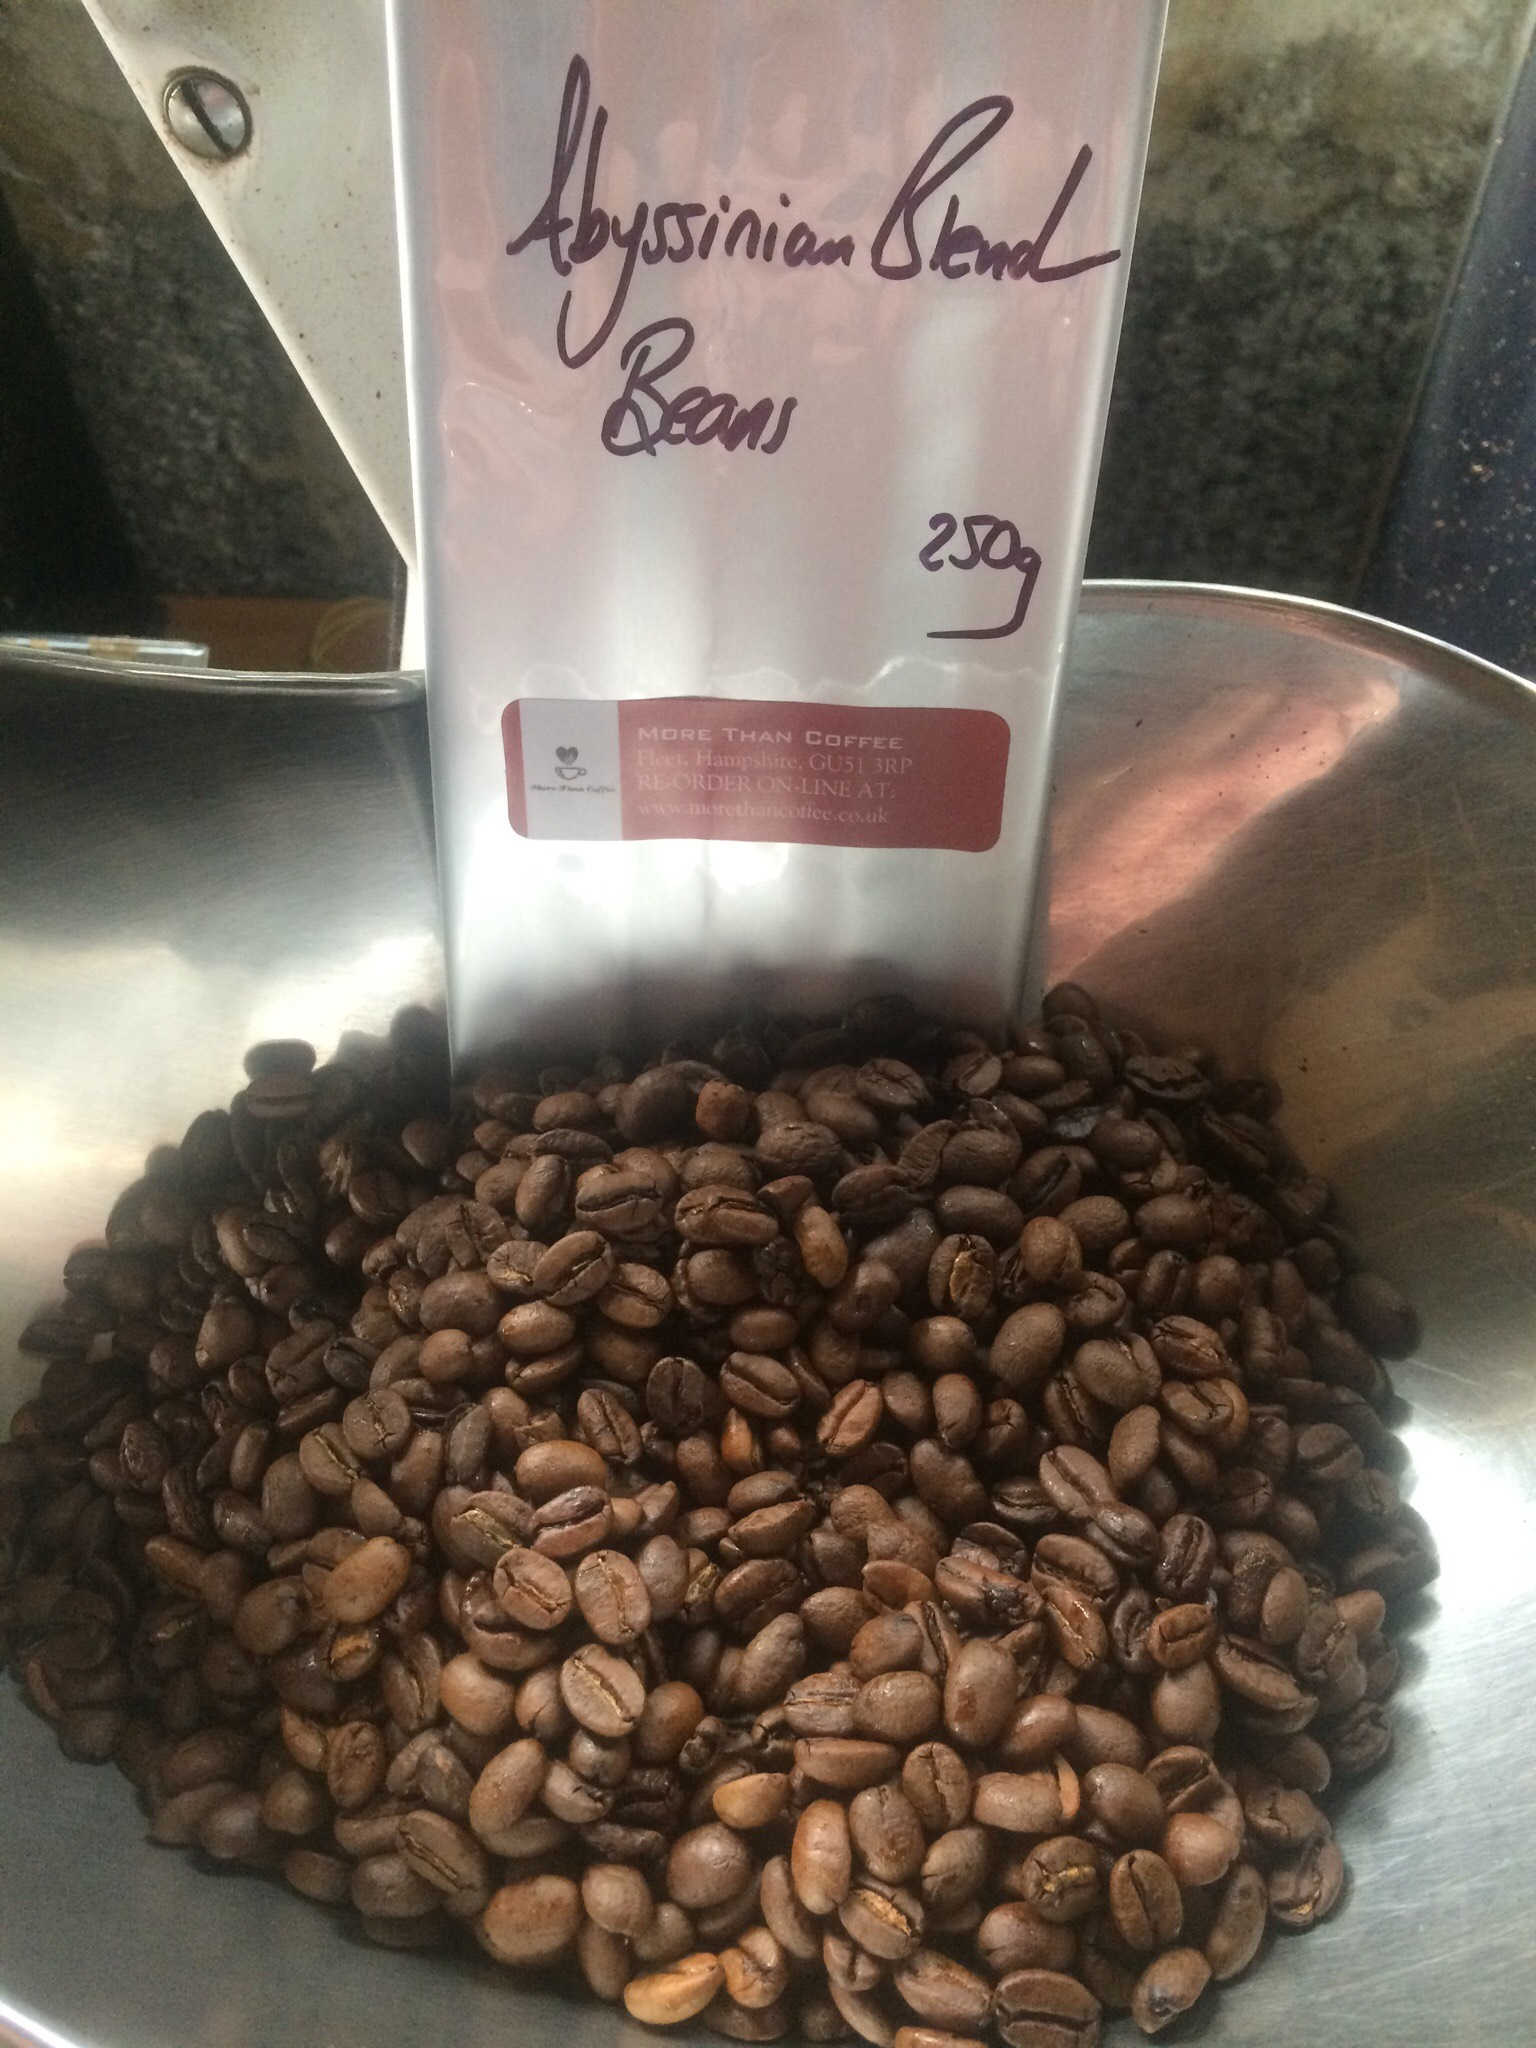 Abyssinian Blend Coffee Beans